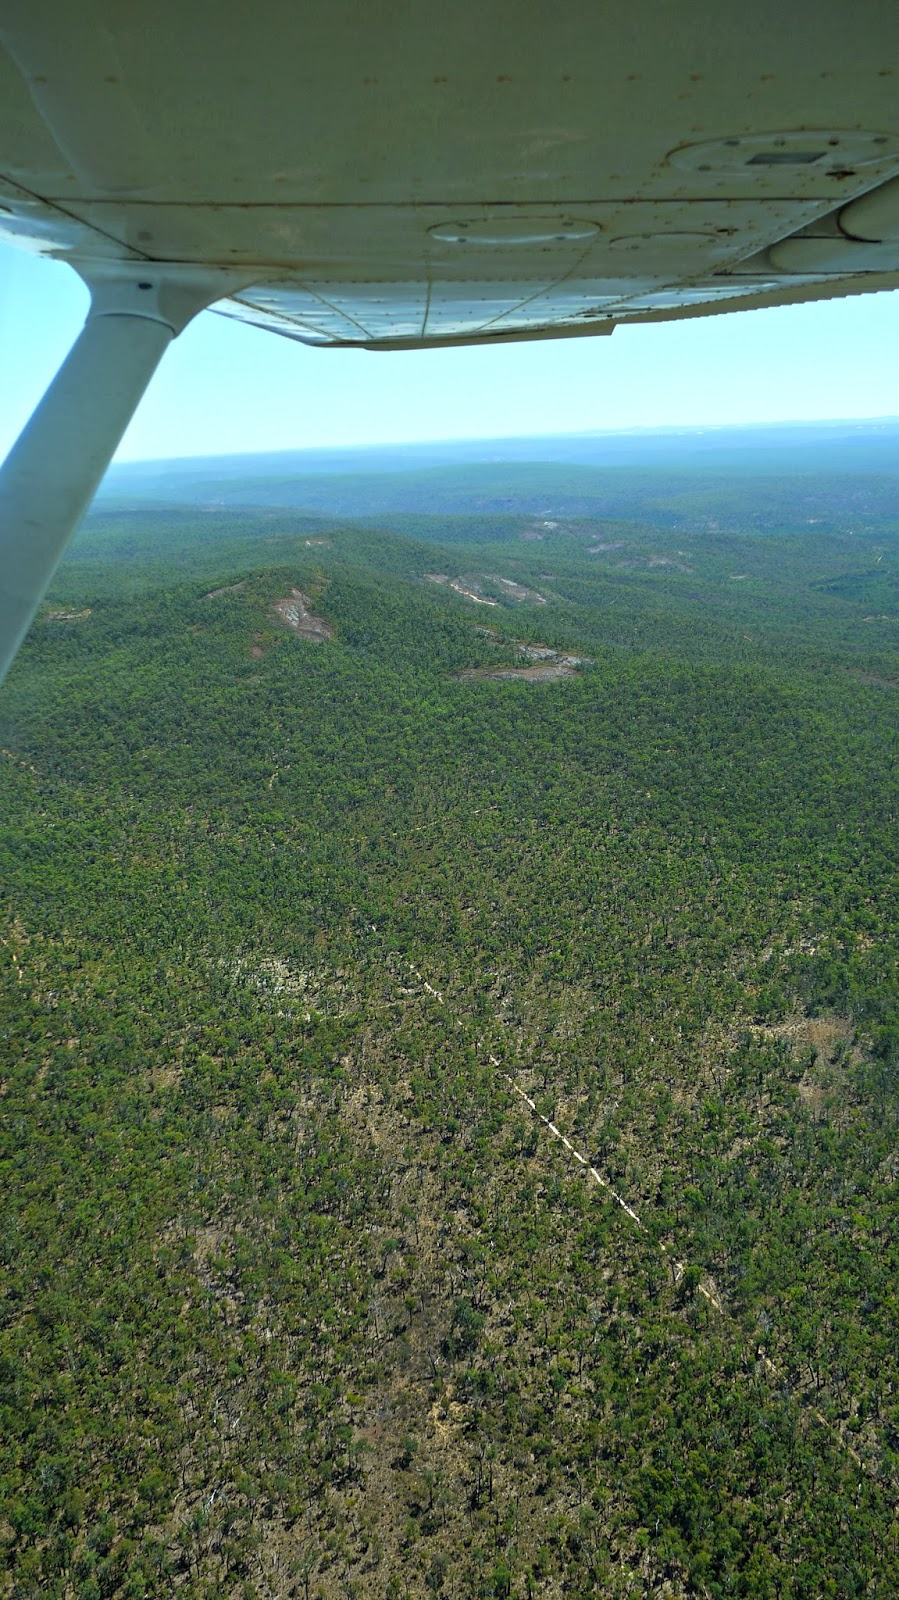 Birdseye view of the Darling Ranges Australia